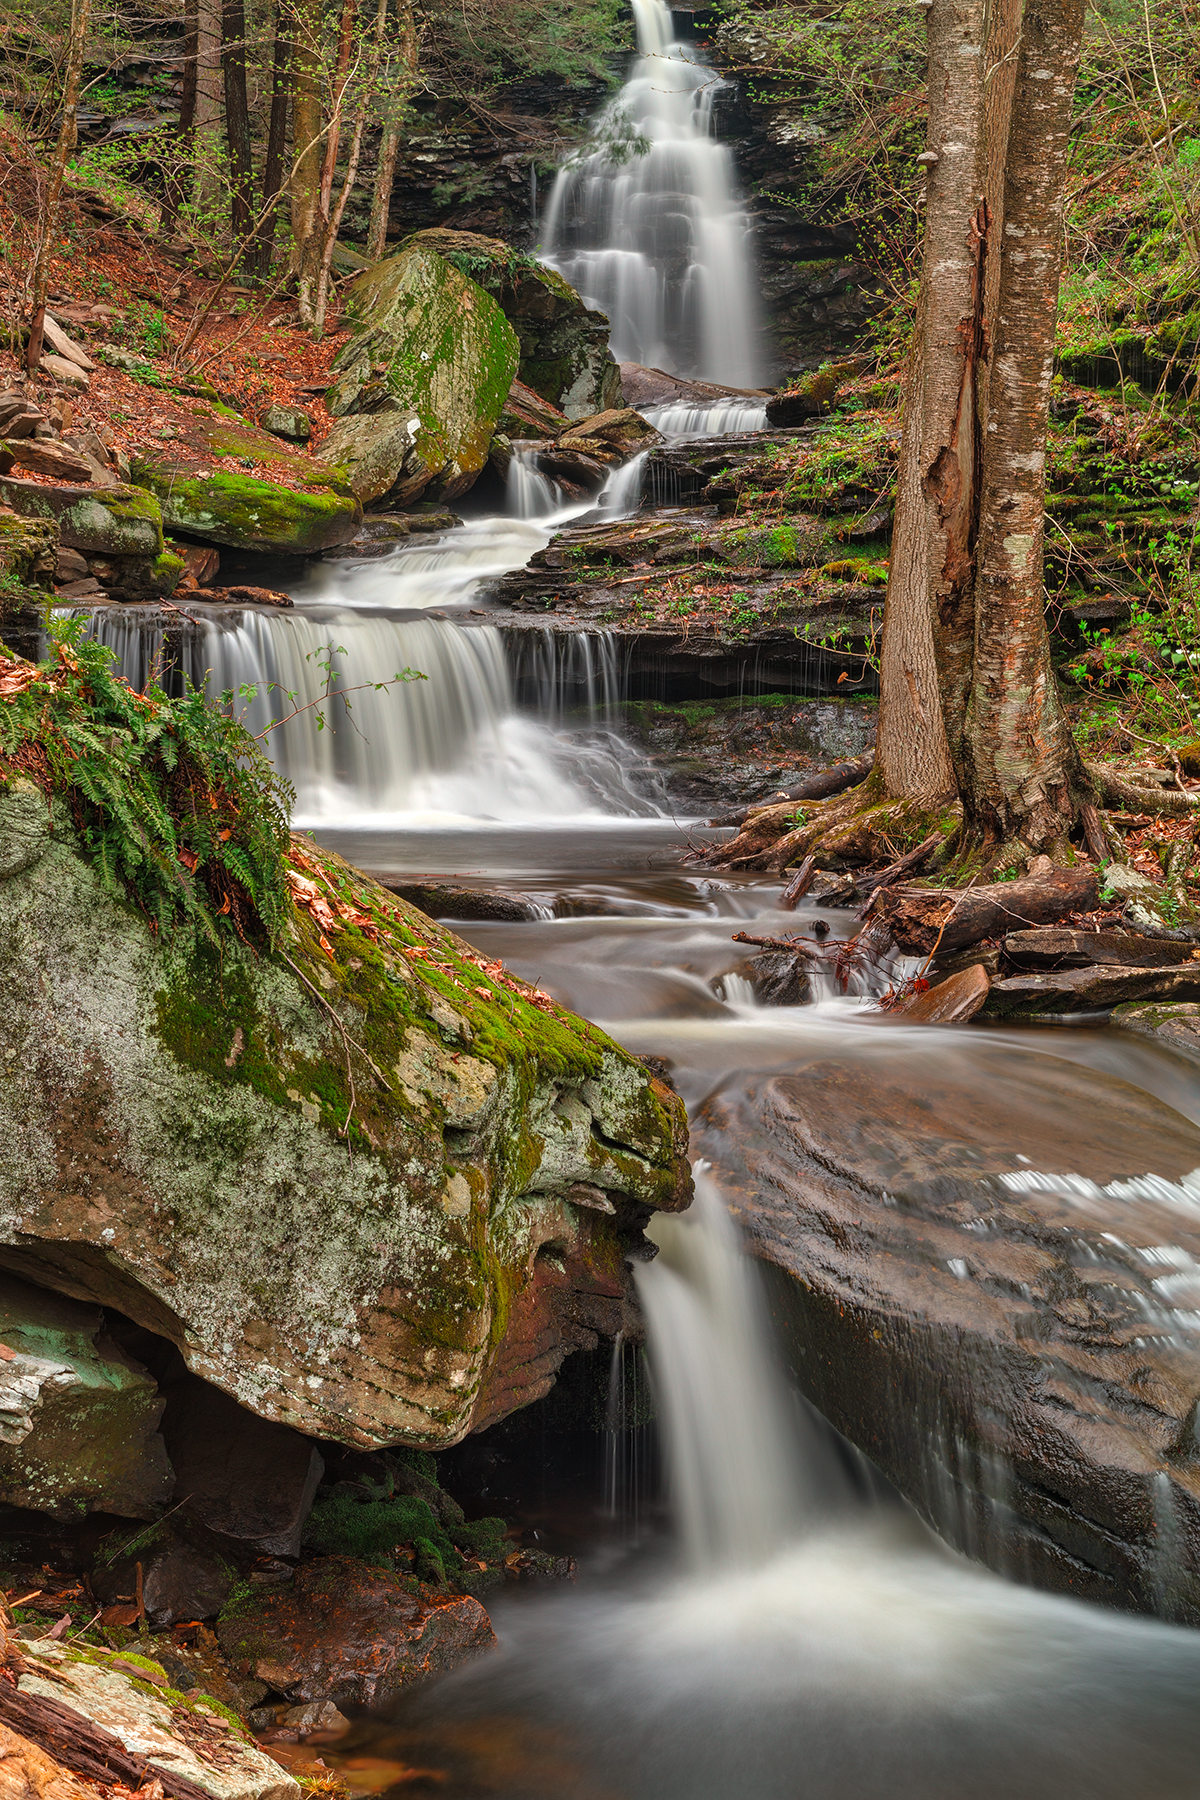 Ricketts glen waterfall layers - hdr photo